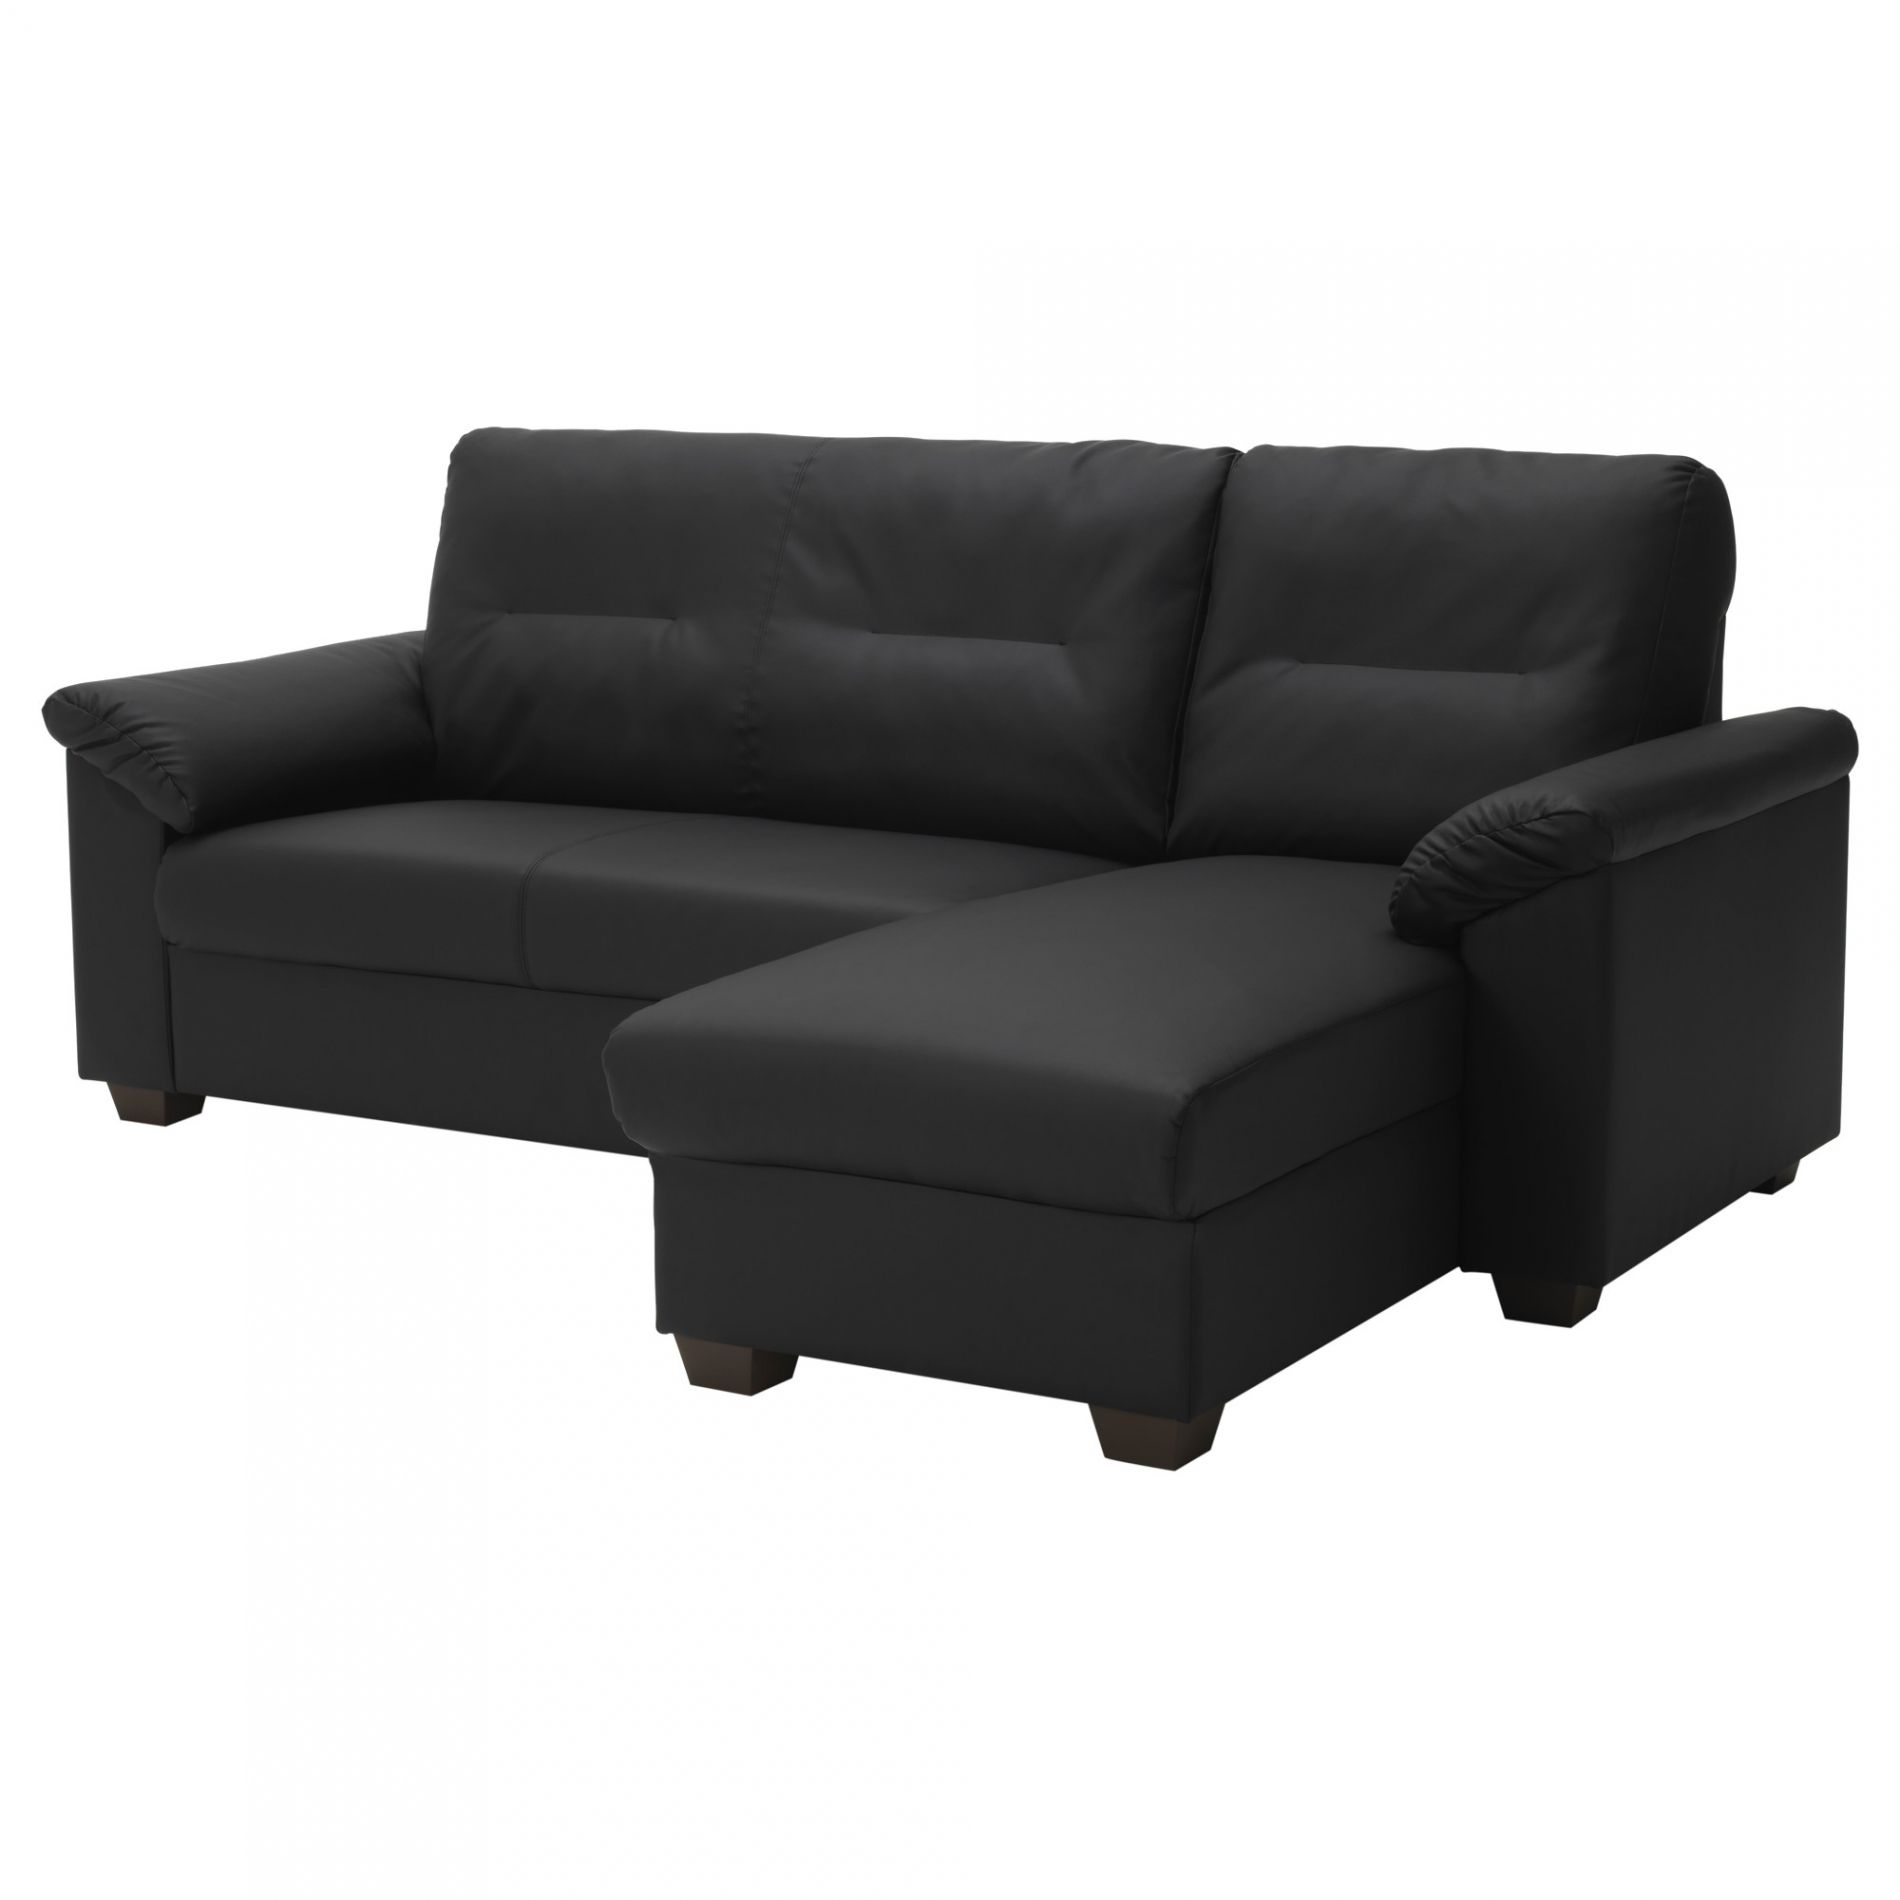 best of knislinge sofa review gallery-Beautiful Knislinge sofa Review Wallpaper